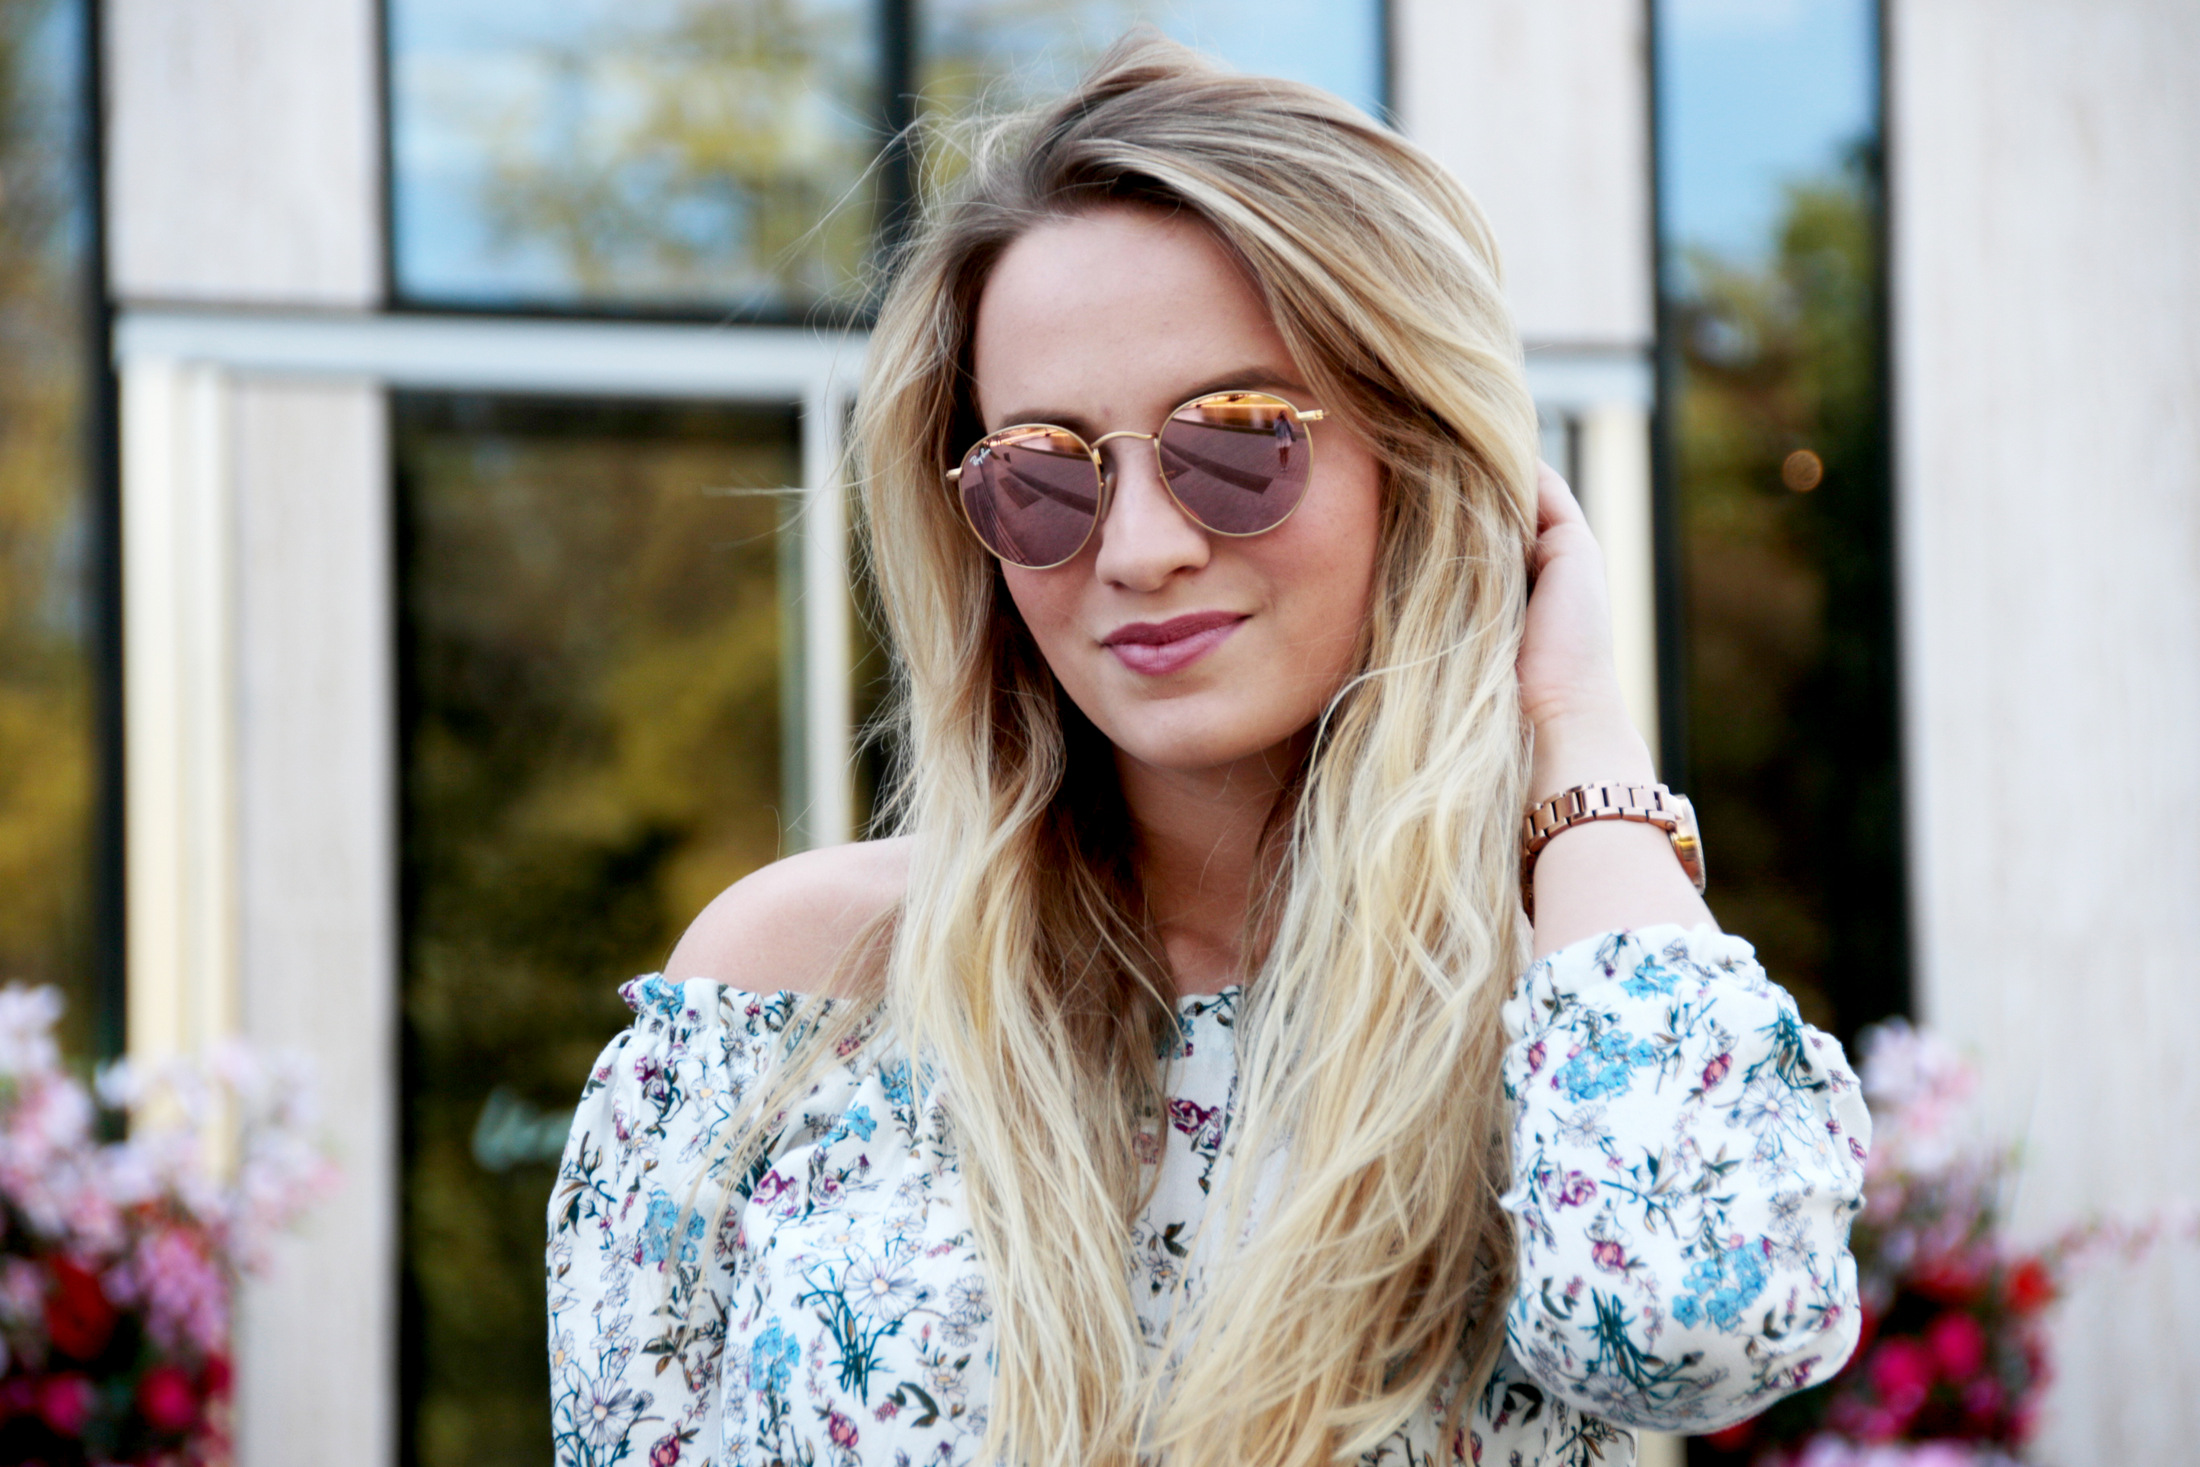 maxirock-maxiskirt-maxi-off-shoulder-shirt-flowers-olive-green-sunnies-shades-round-metal-ray-ban (3)